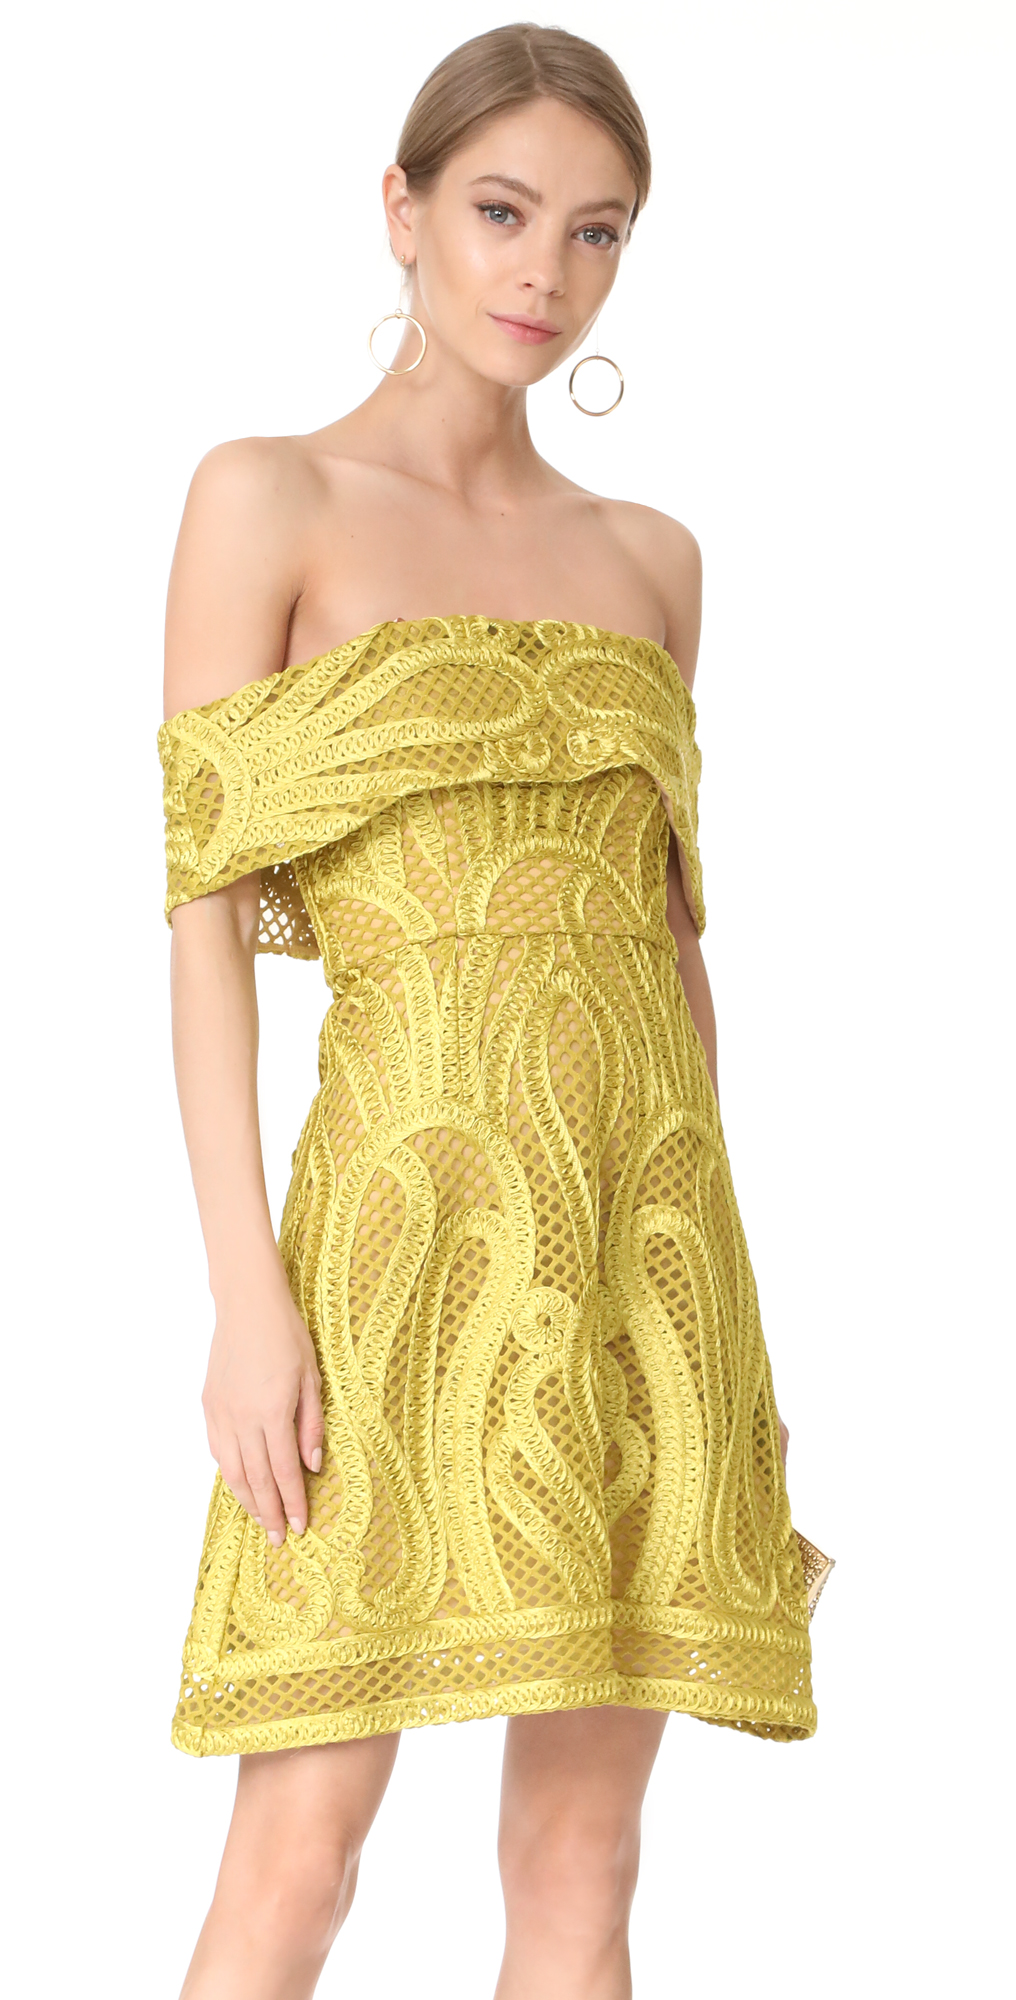 Thurley yellow dress